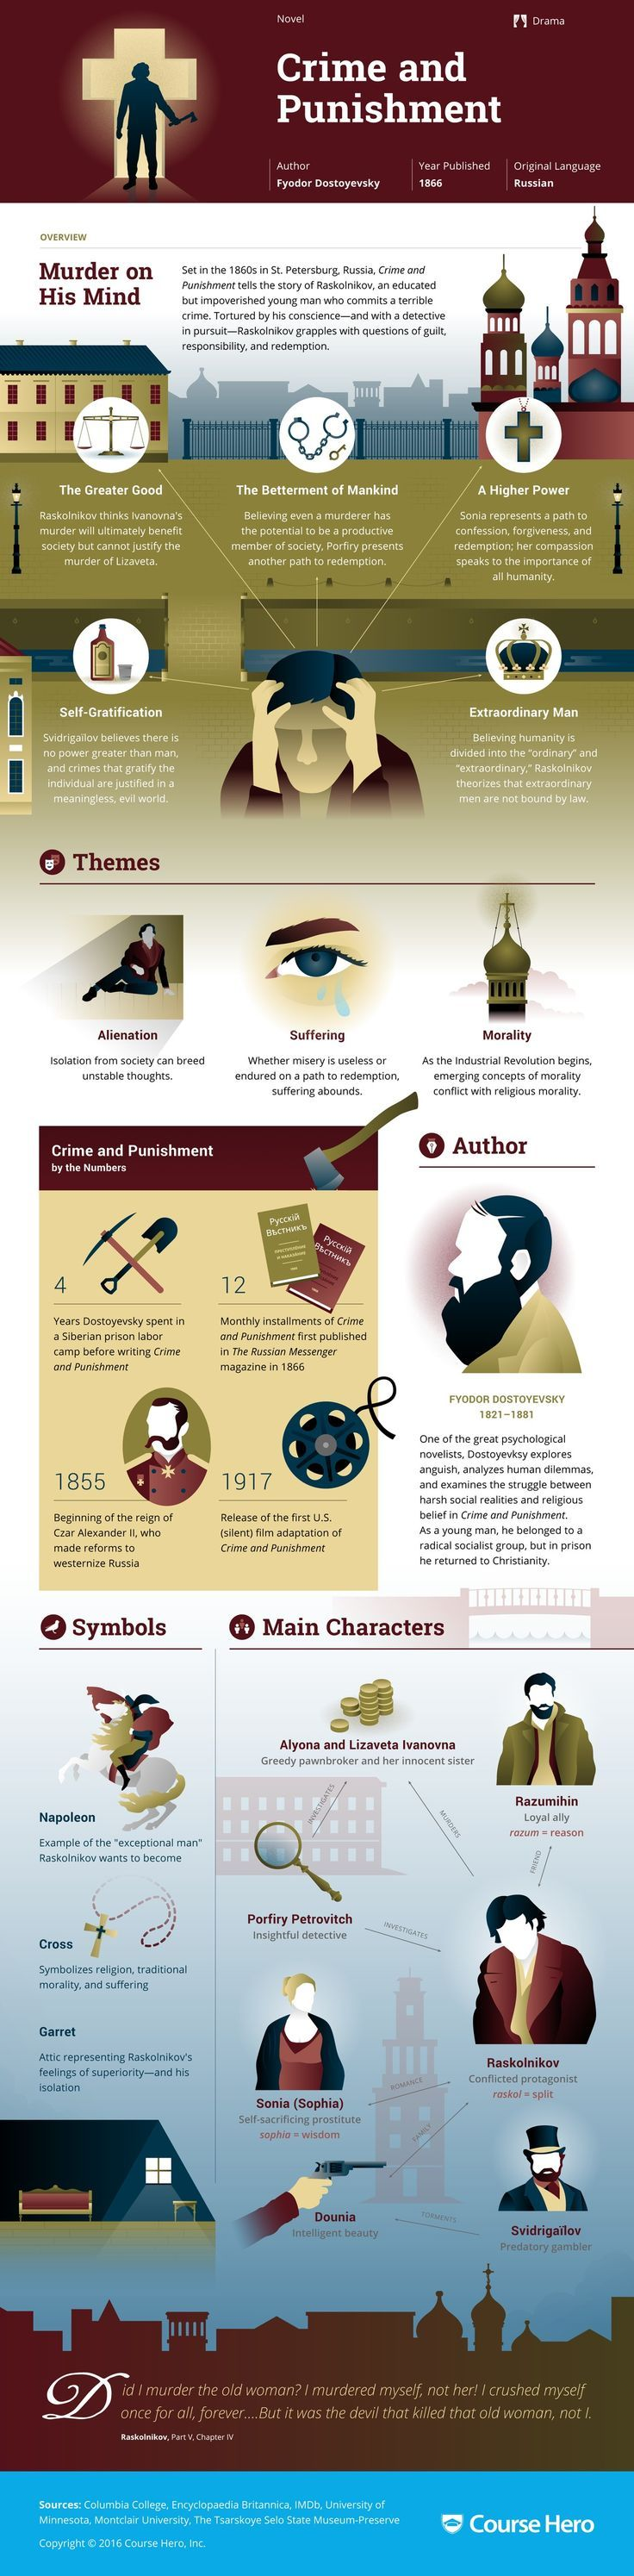 Crime and Punishment Infographic